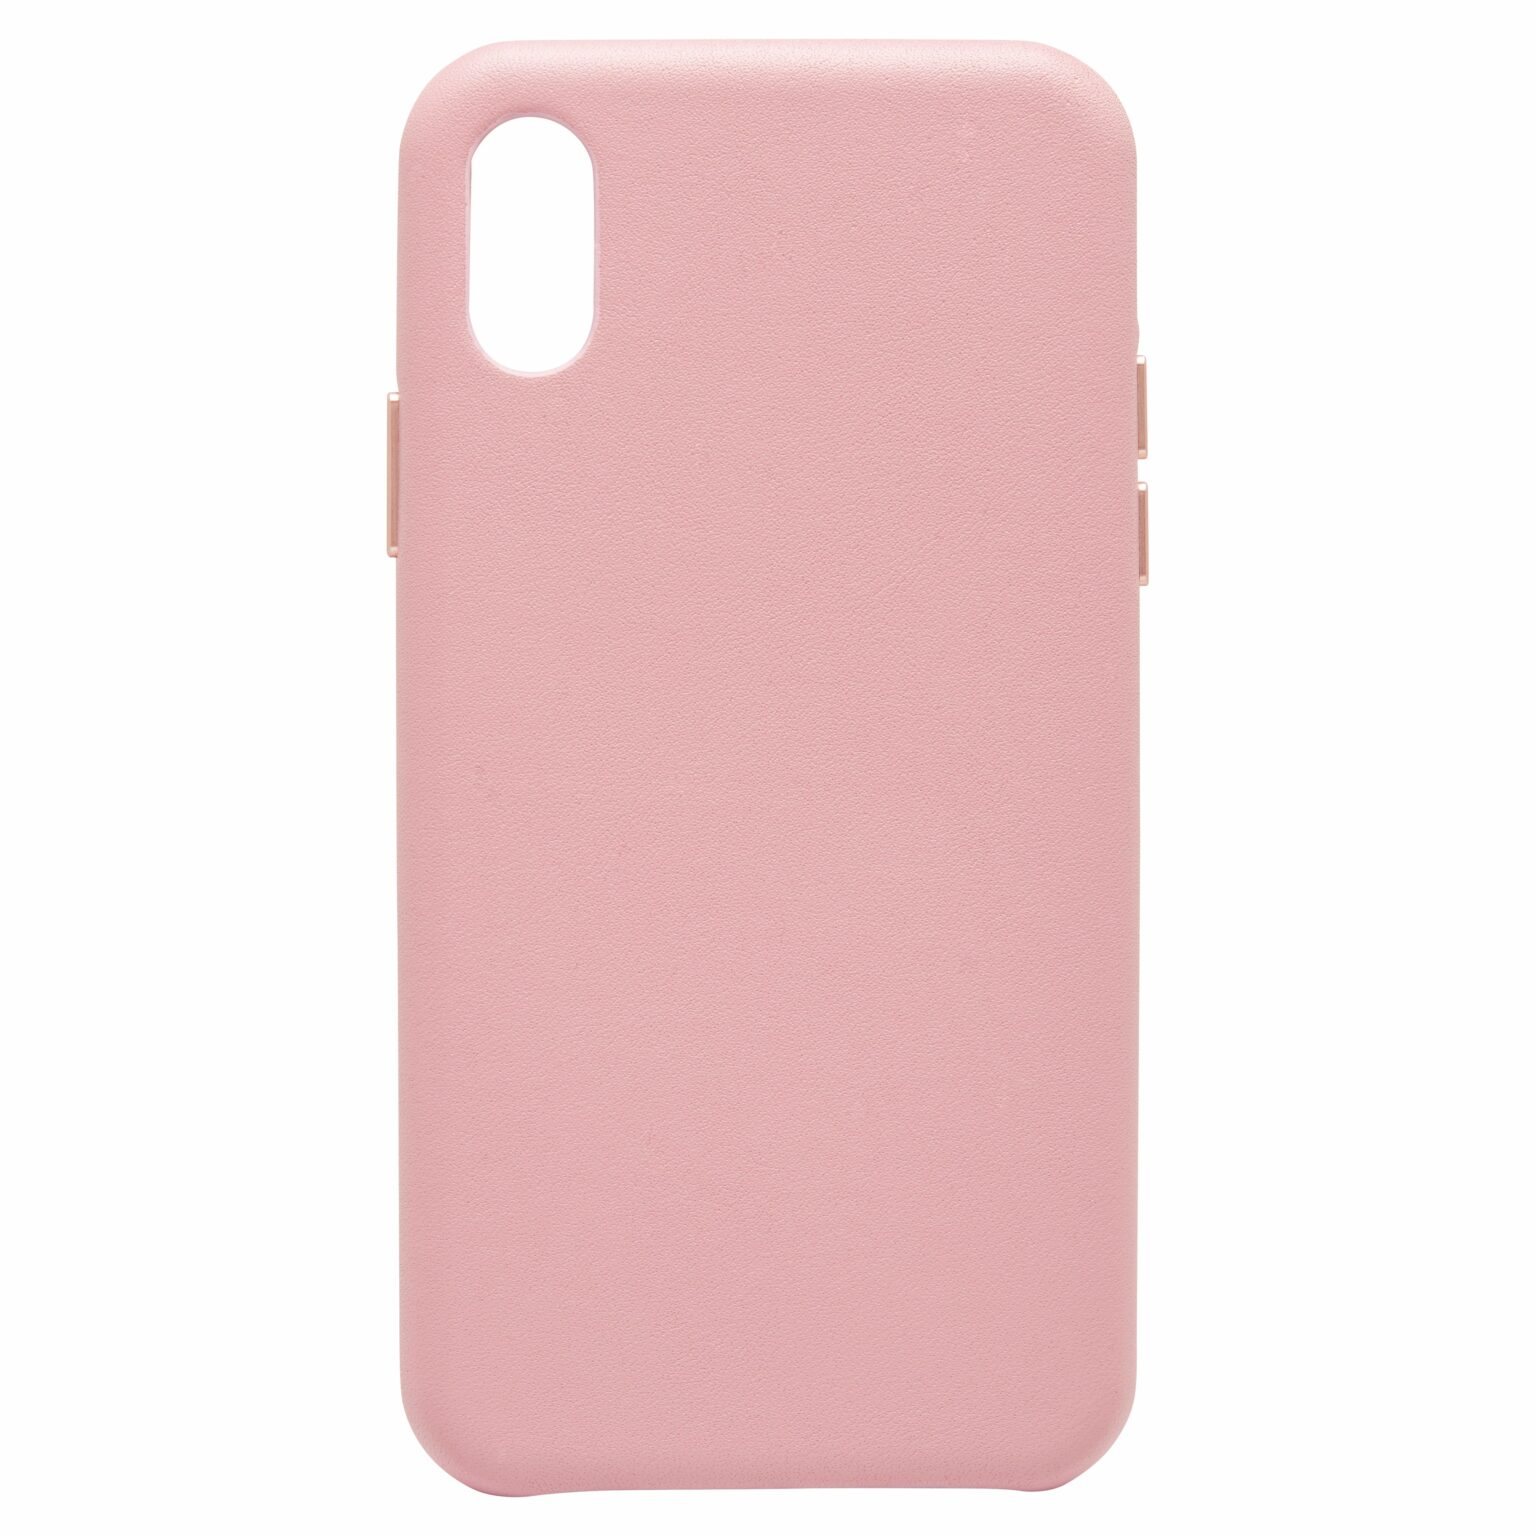 iPhone XR Nappa Leather Case - Nude - Fone Express